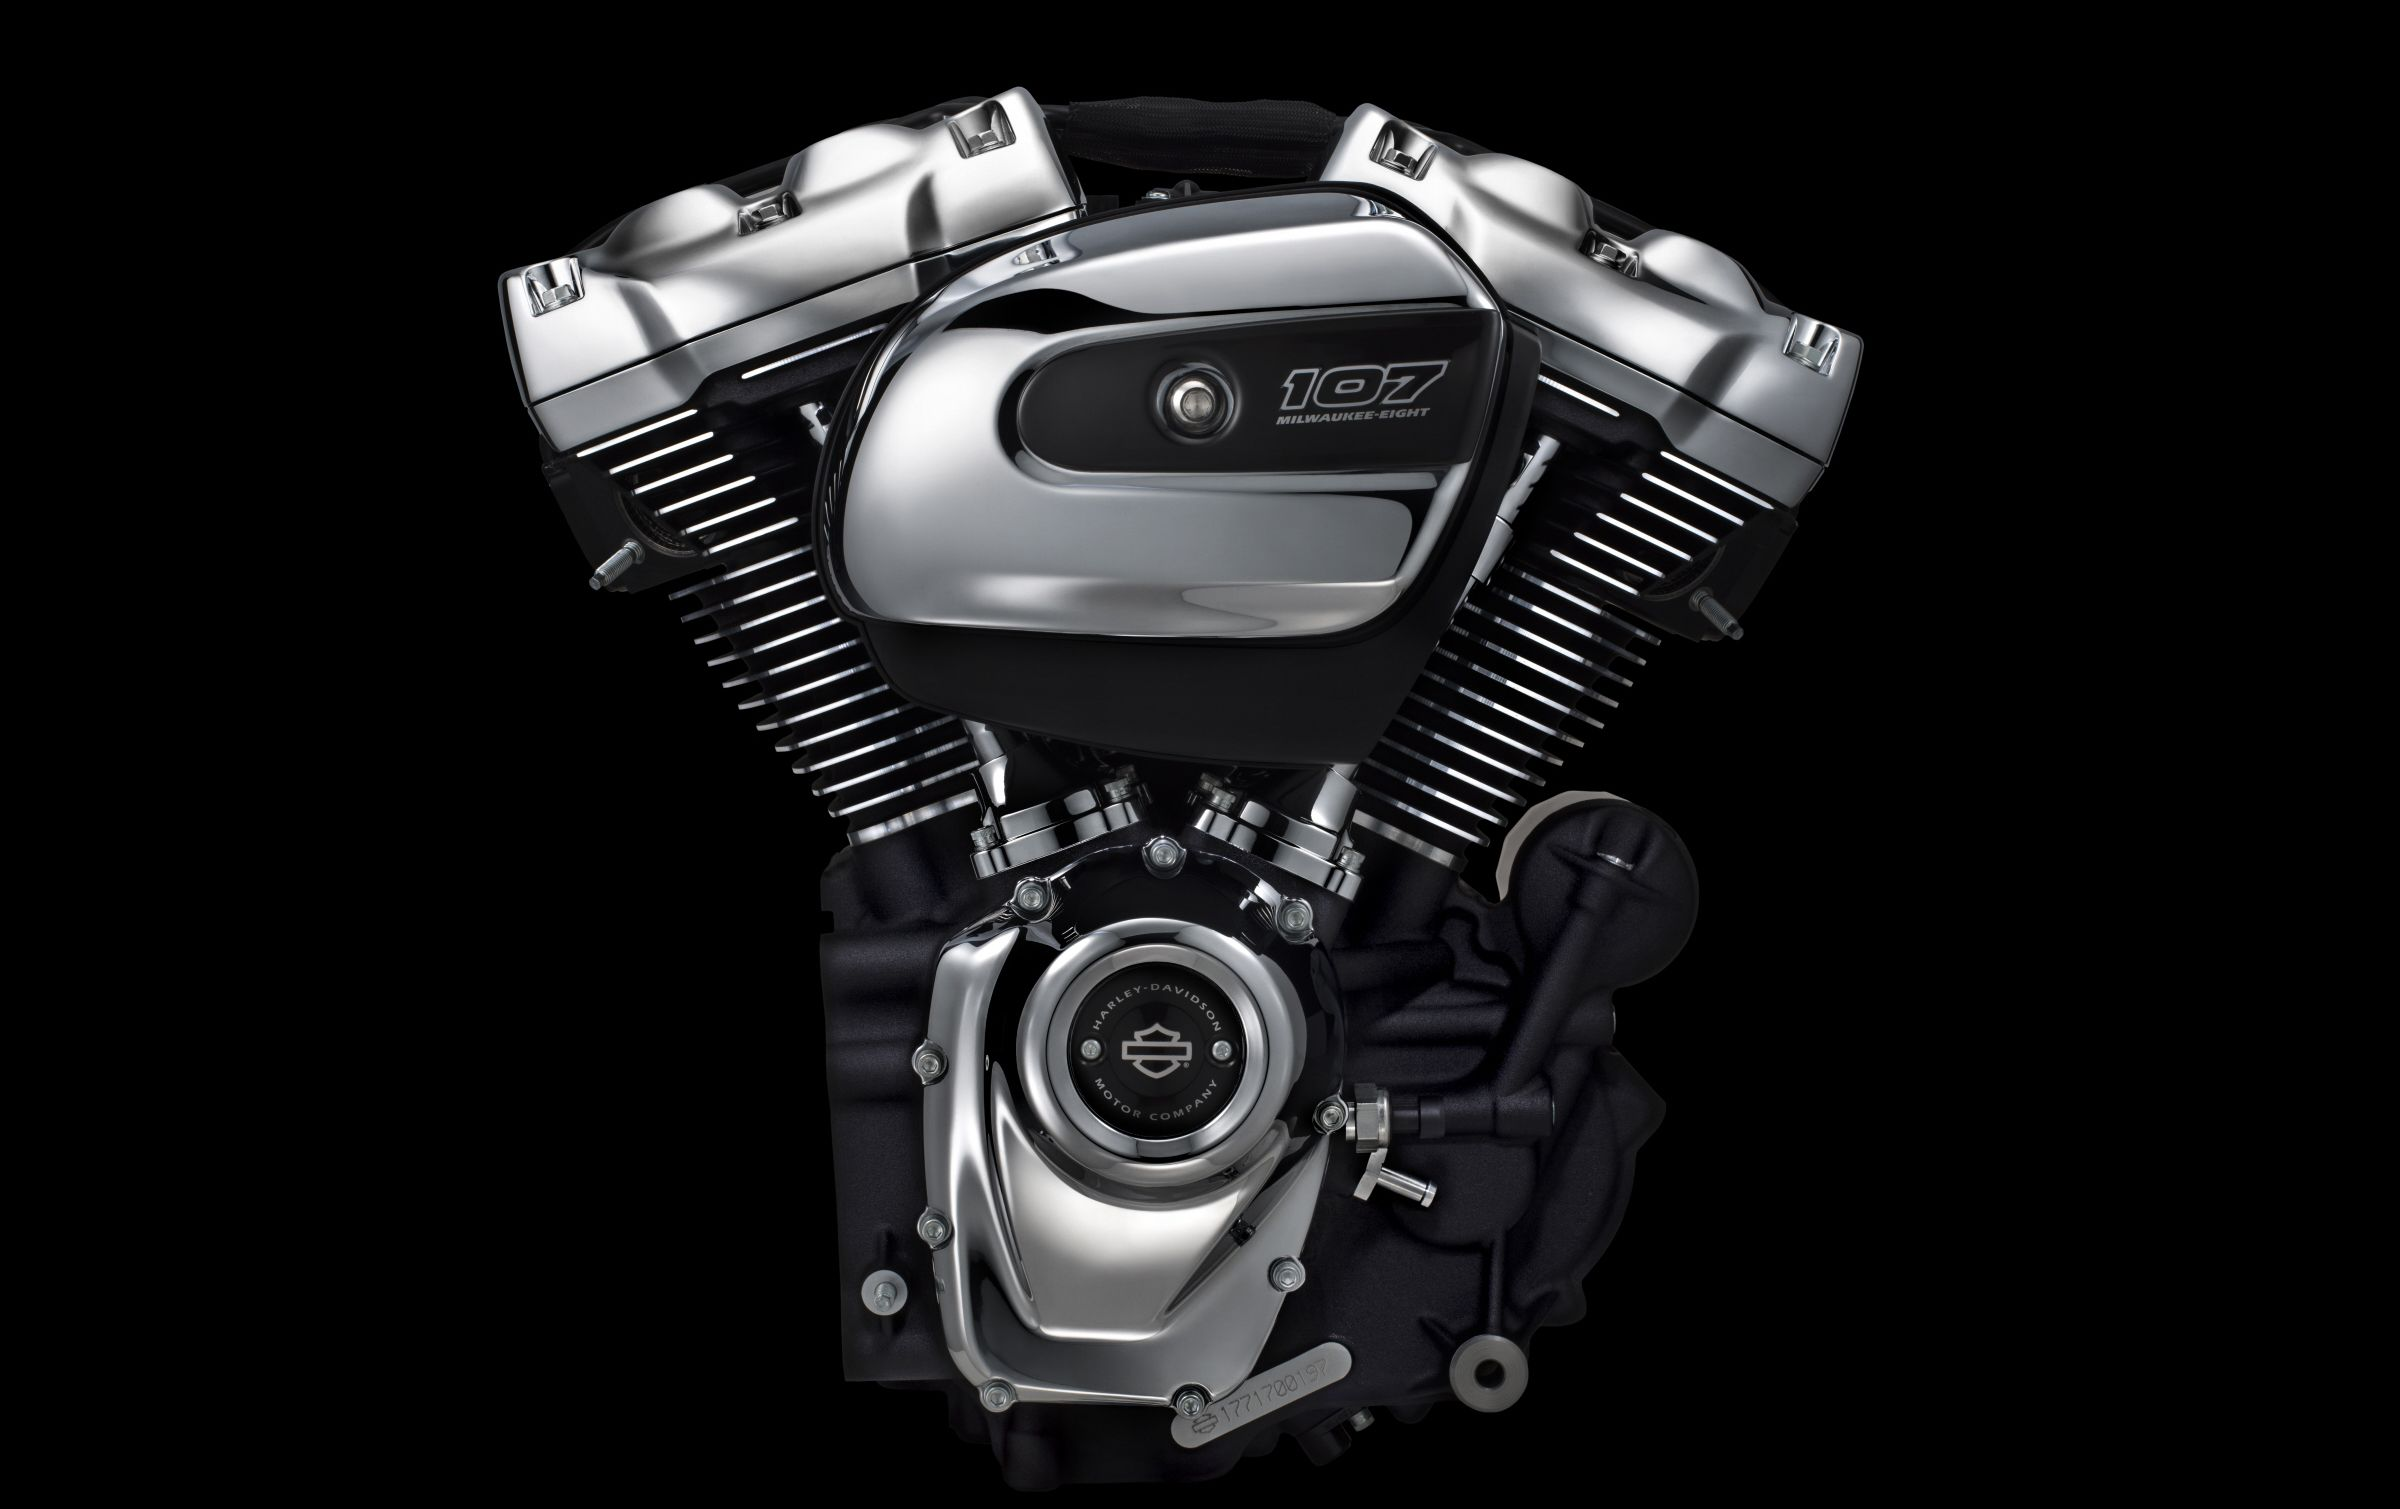 The New H-D Milwaukee-Eight V-Twin Engine for 2017